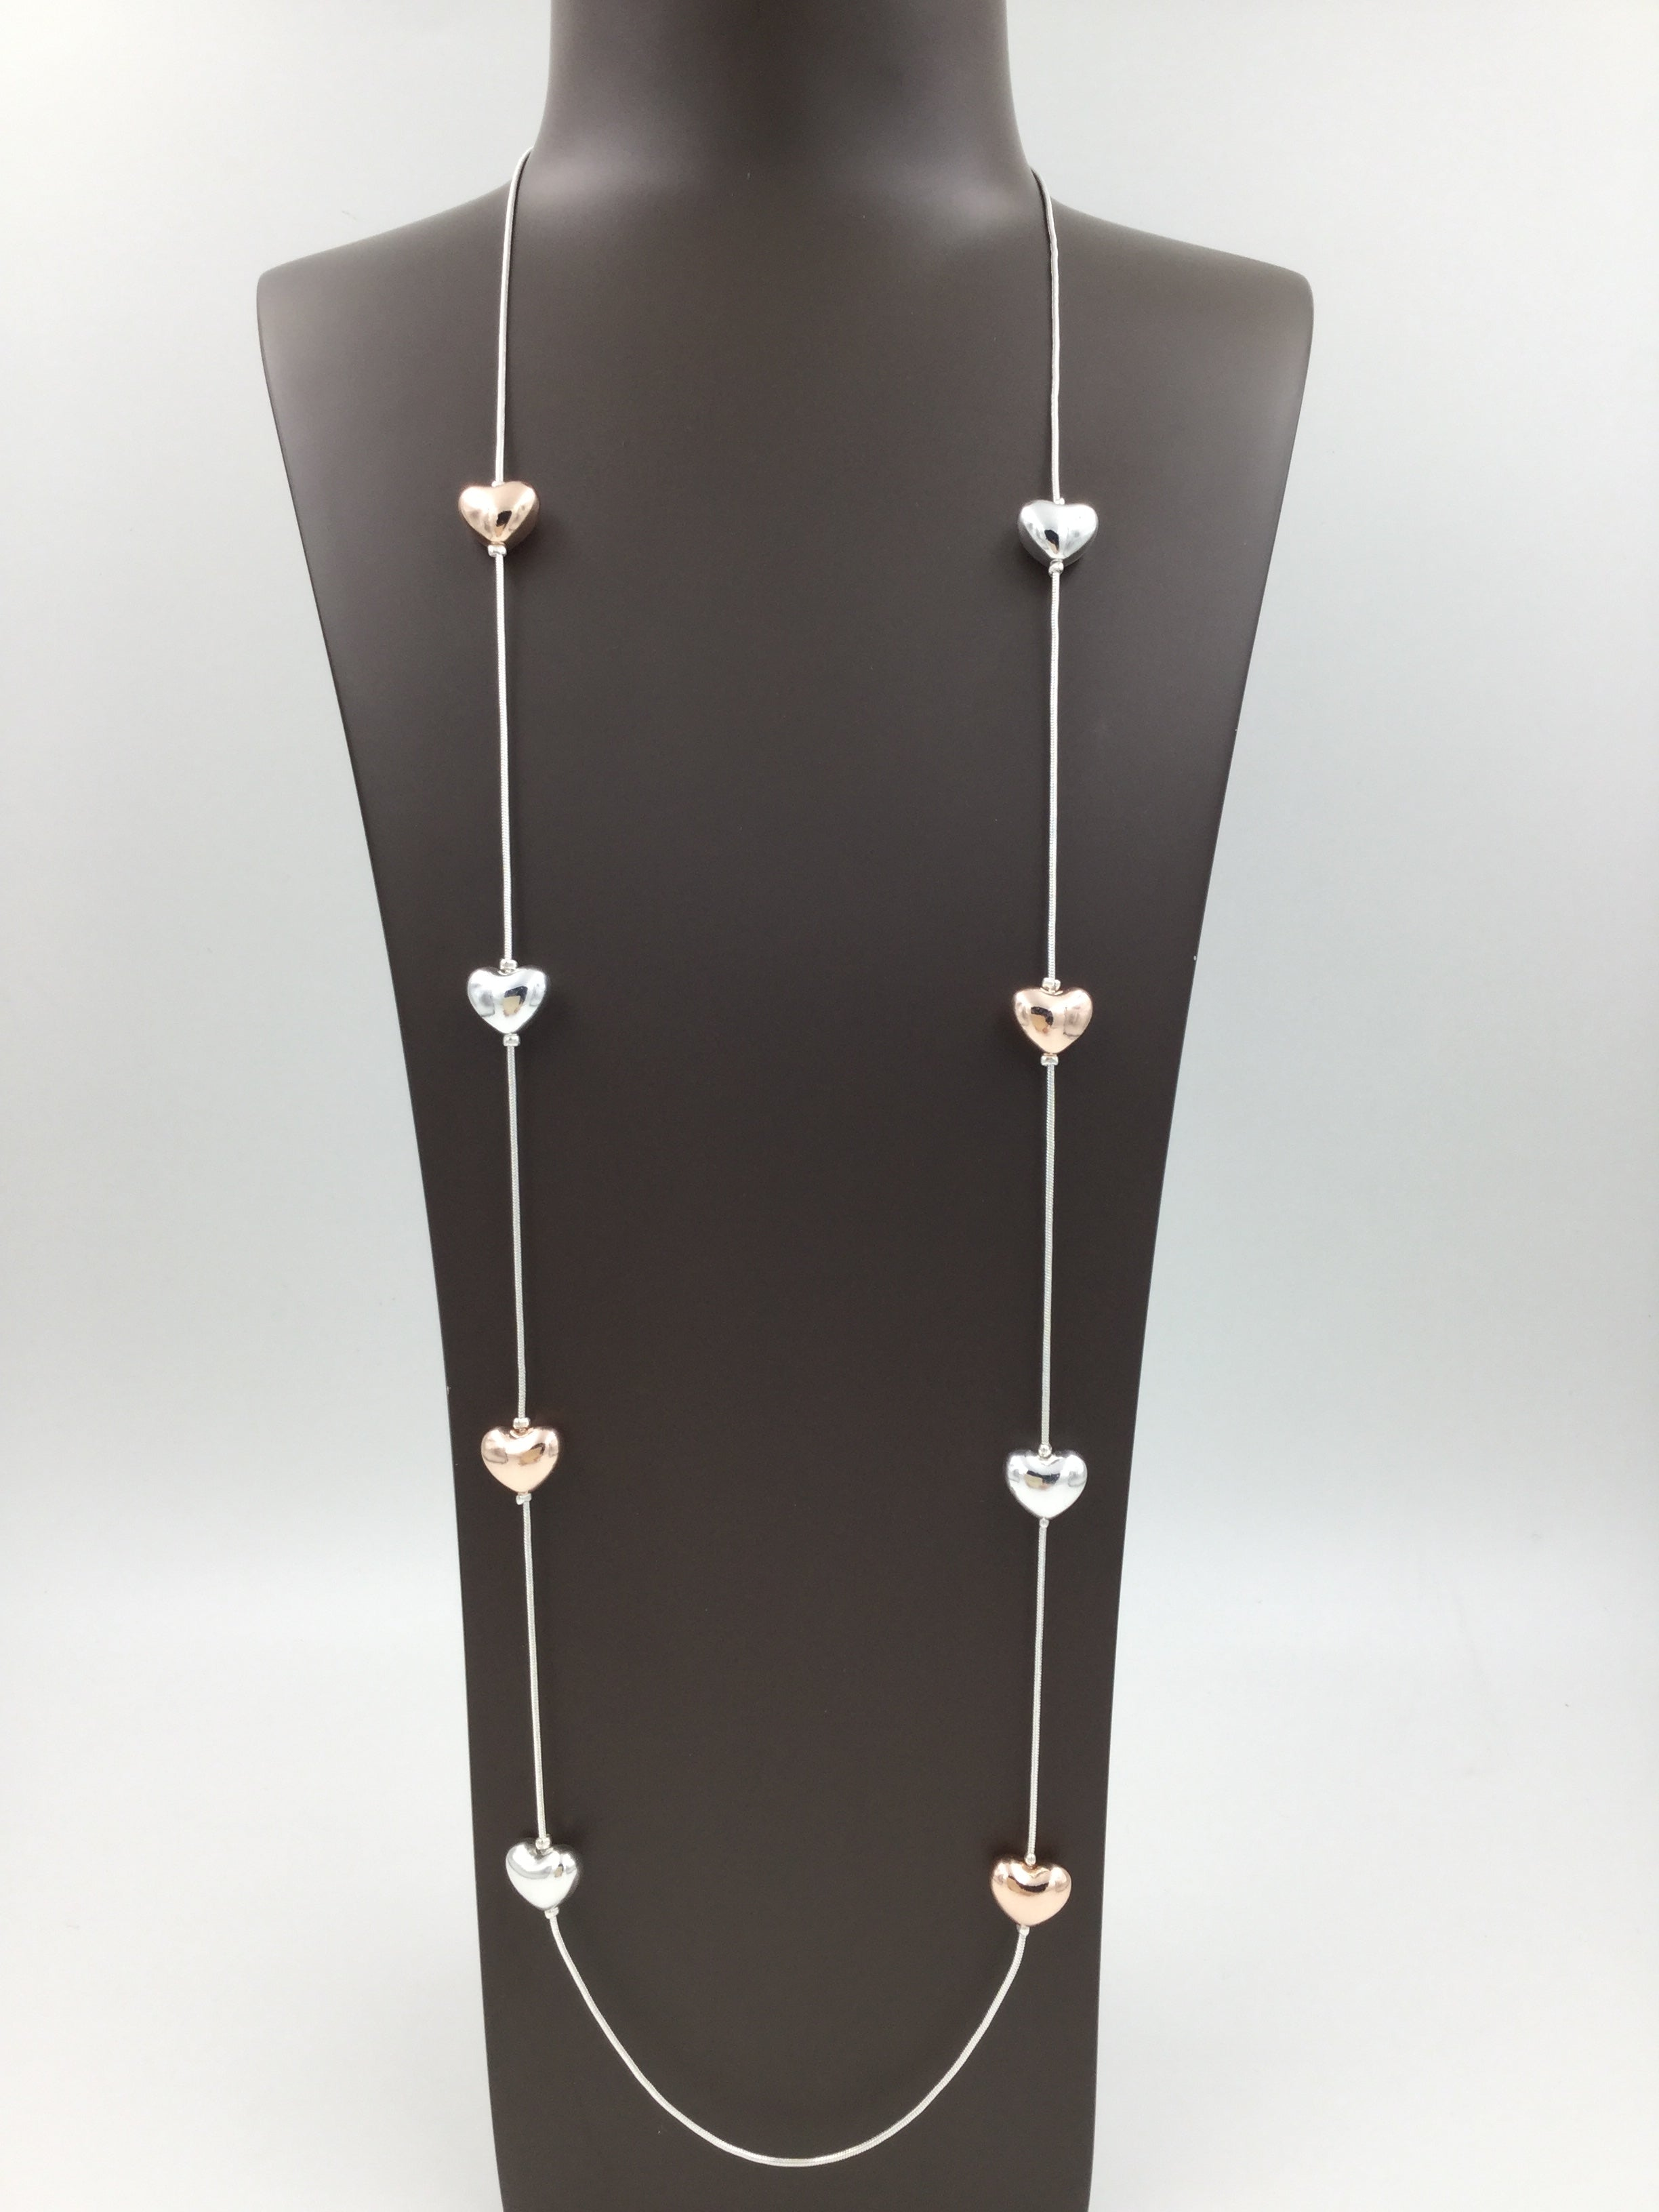 Long Silver and Rose Gold Heart Necklace